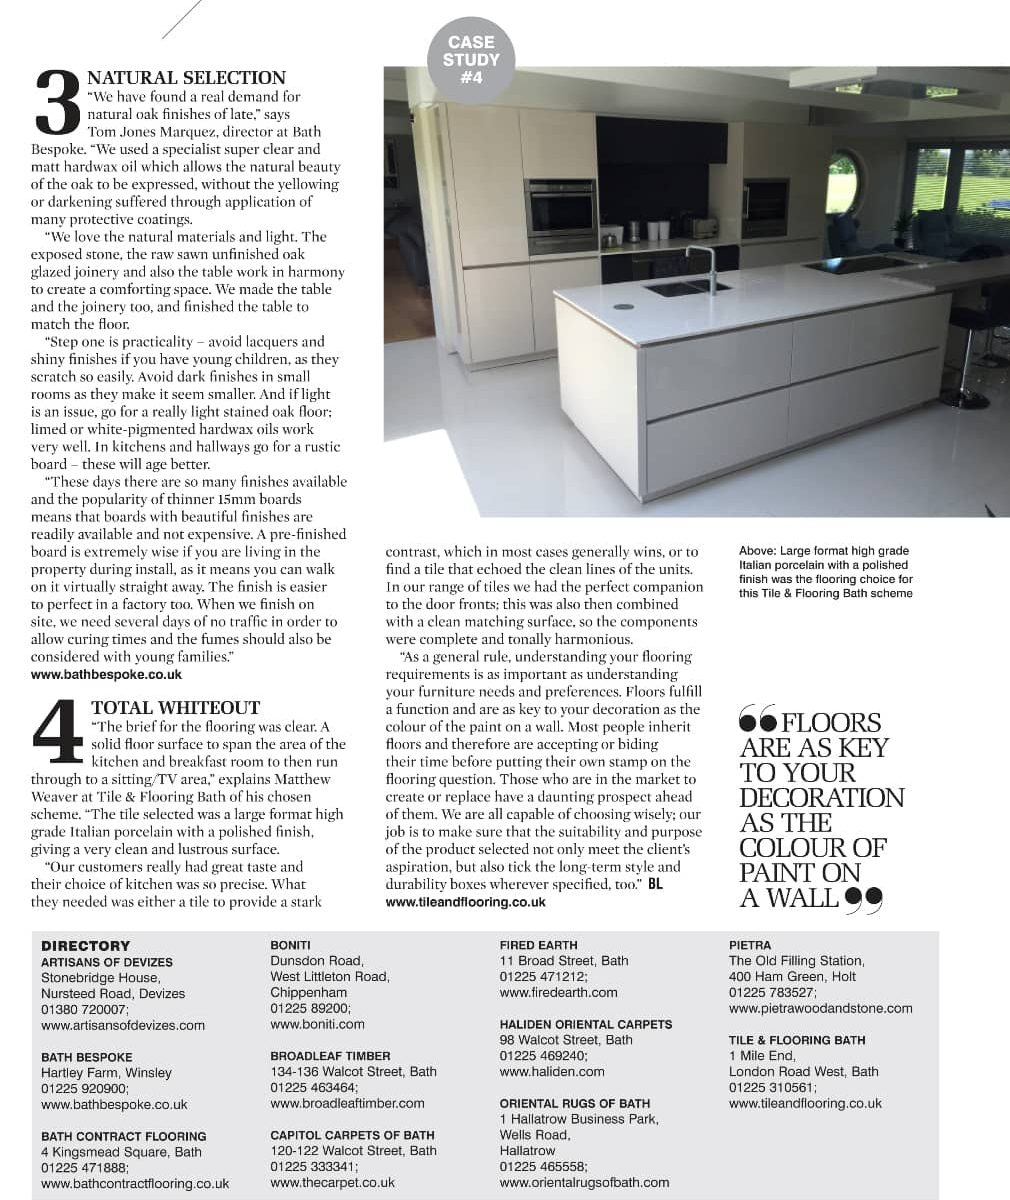 Wooden flooring feature in Bath Life Magazine